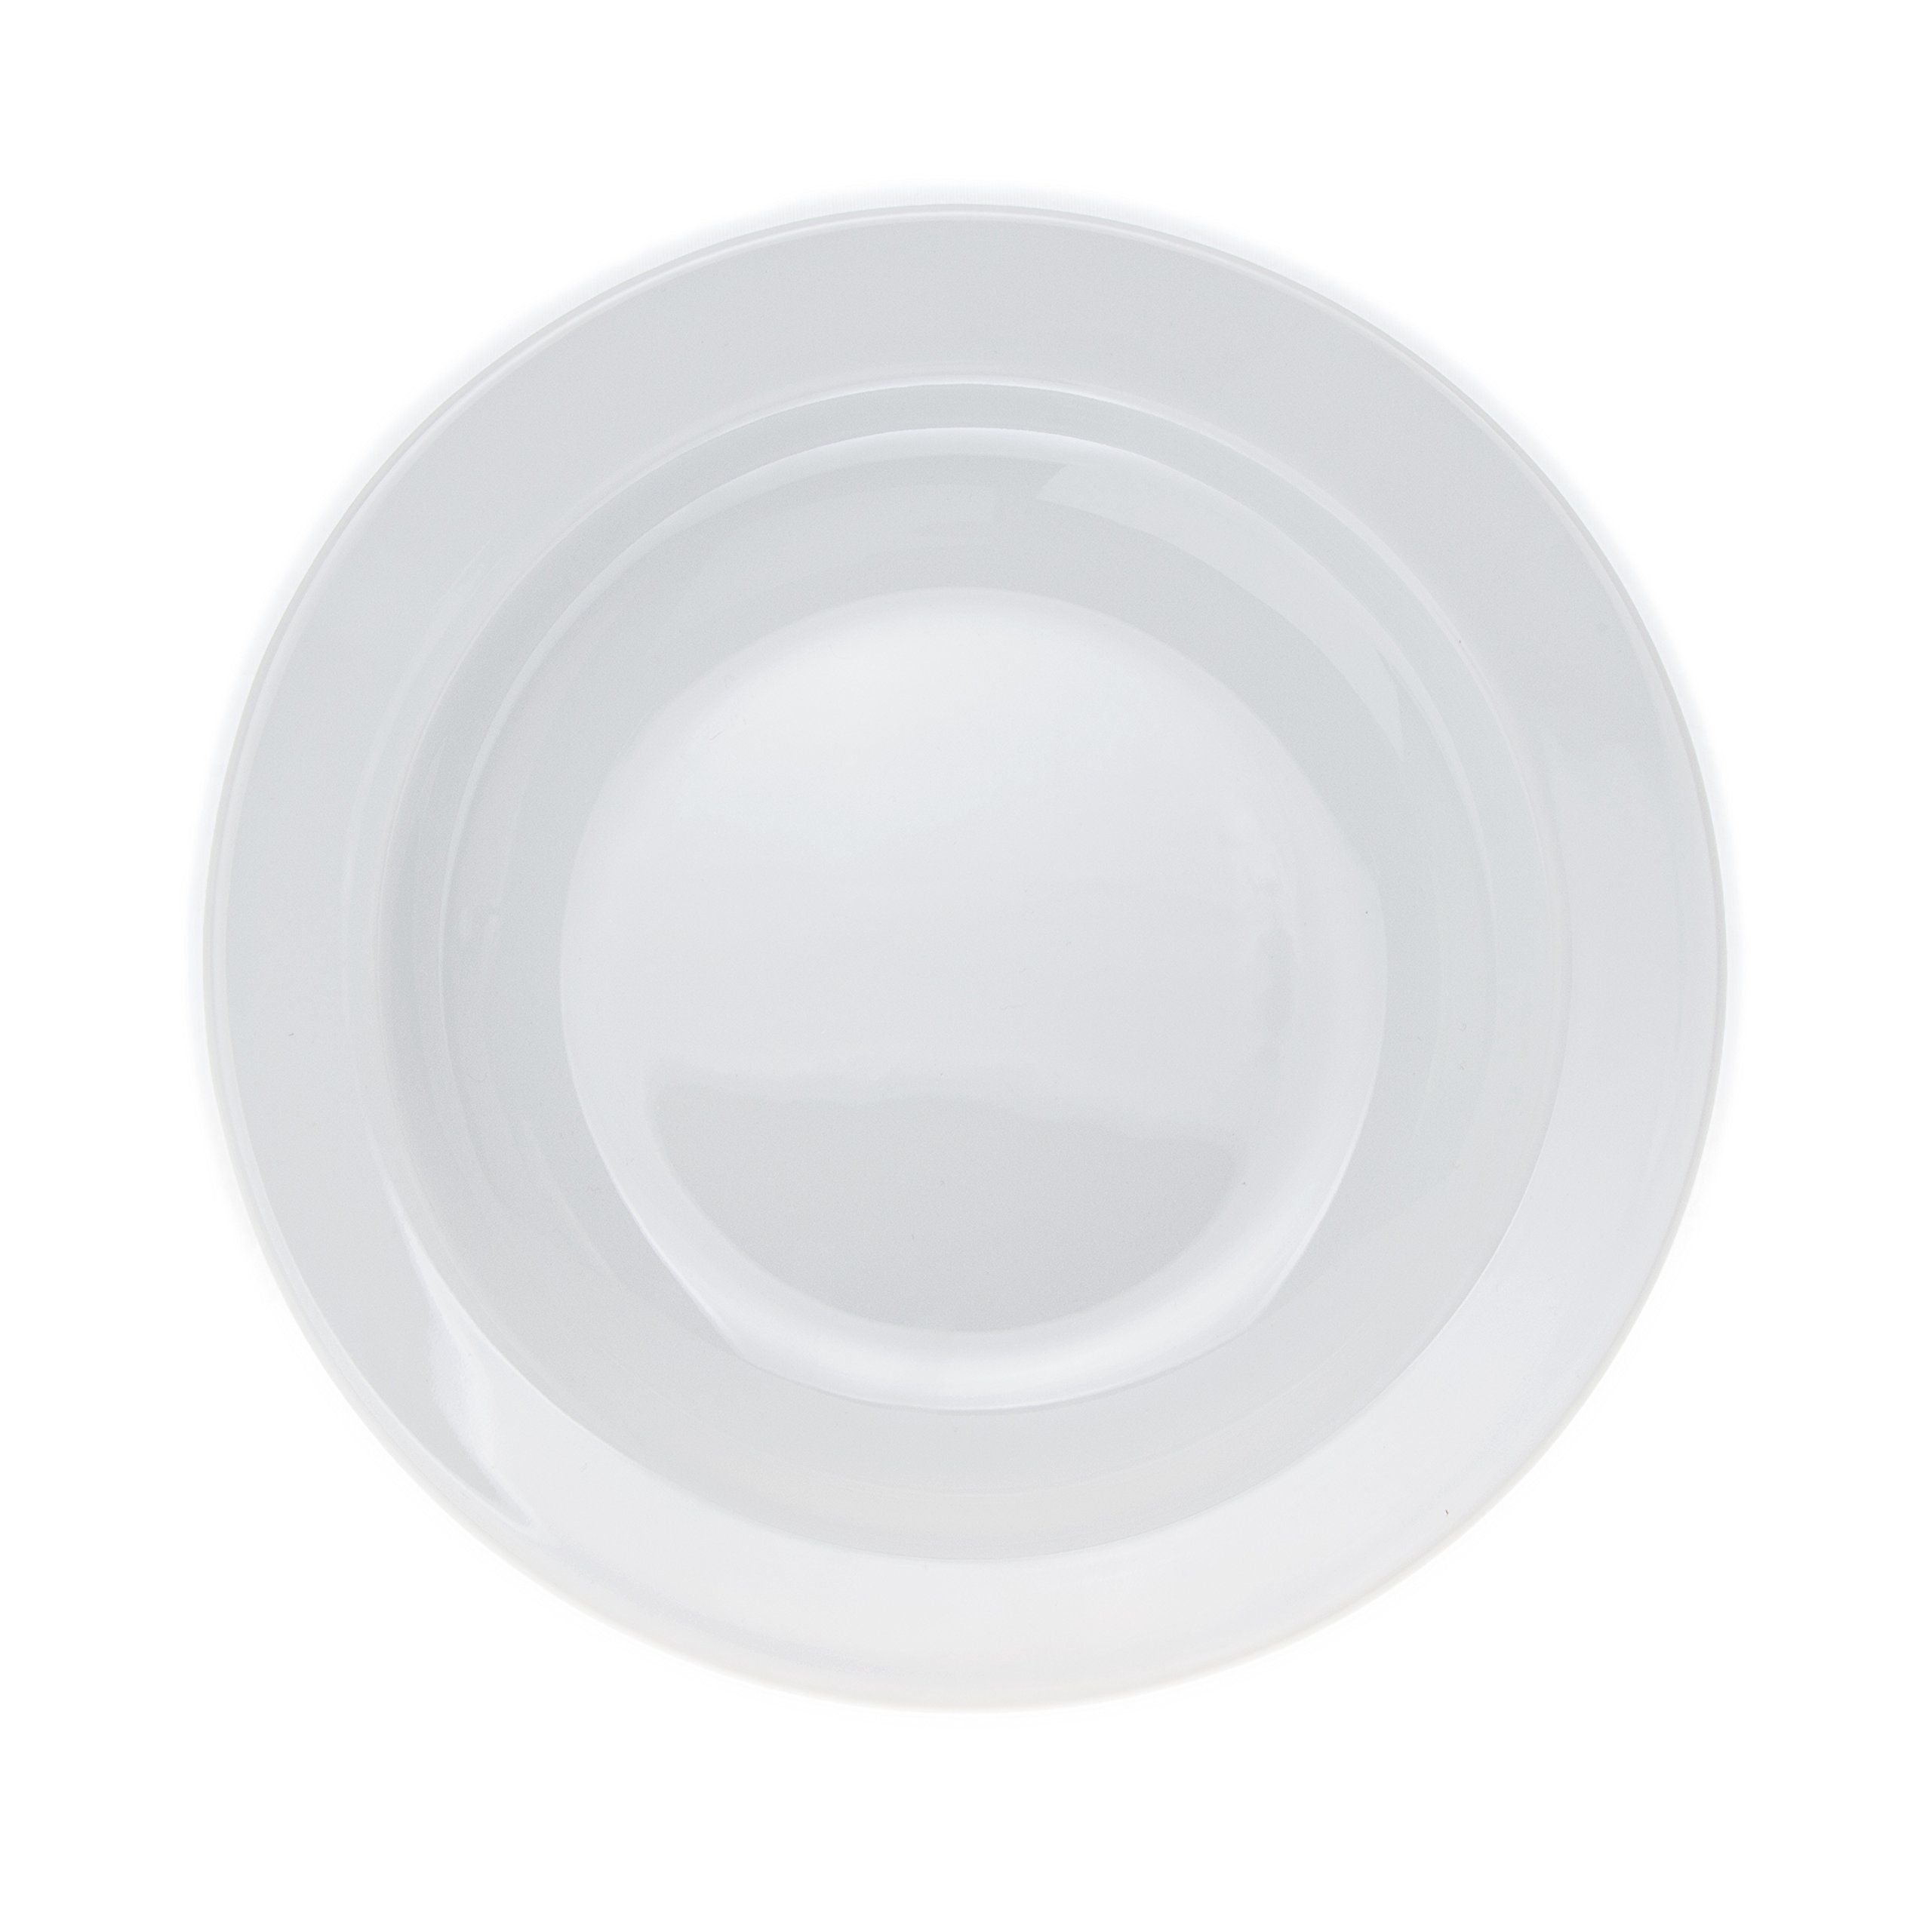 4-Piece Pasta/Salad/Soup/Serving PLATES Set, White Porcelain, Restaurant&Hotel Quality, size 9''